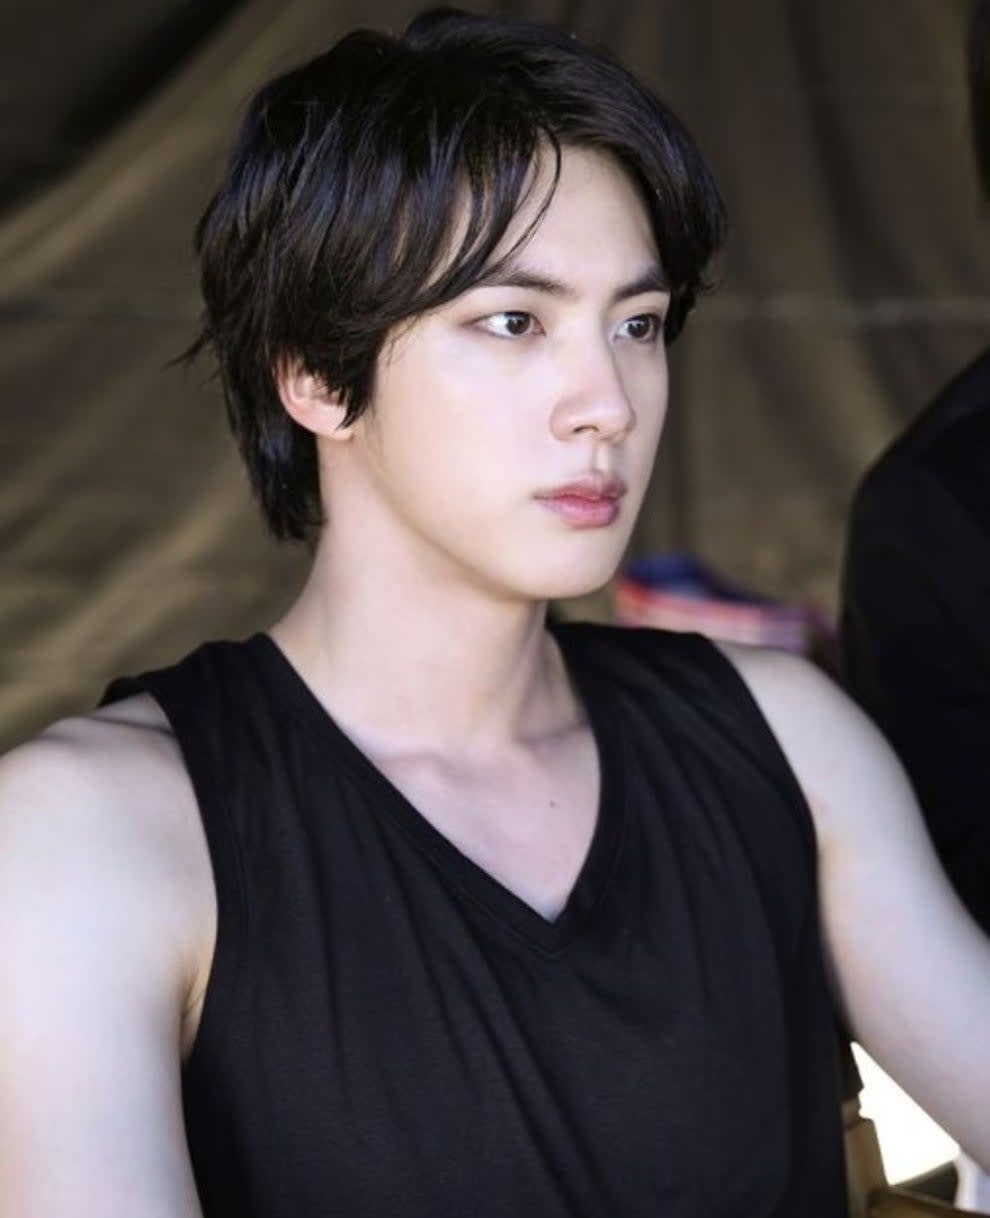 Jin wears a black tank top and looks away from the camera; he has dark hair